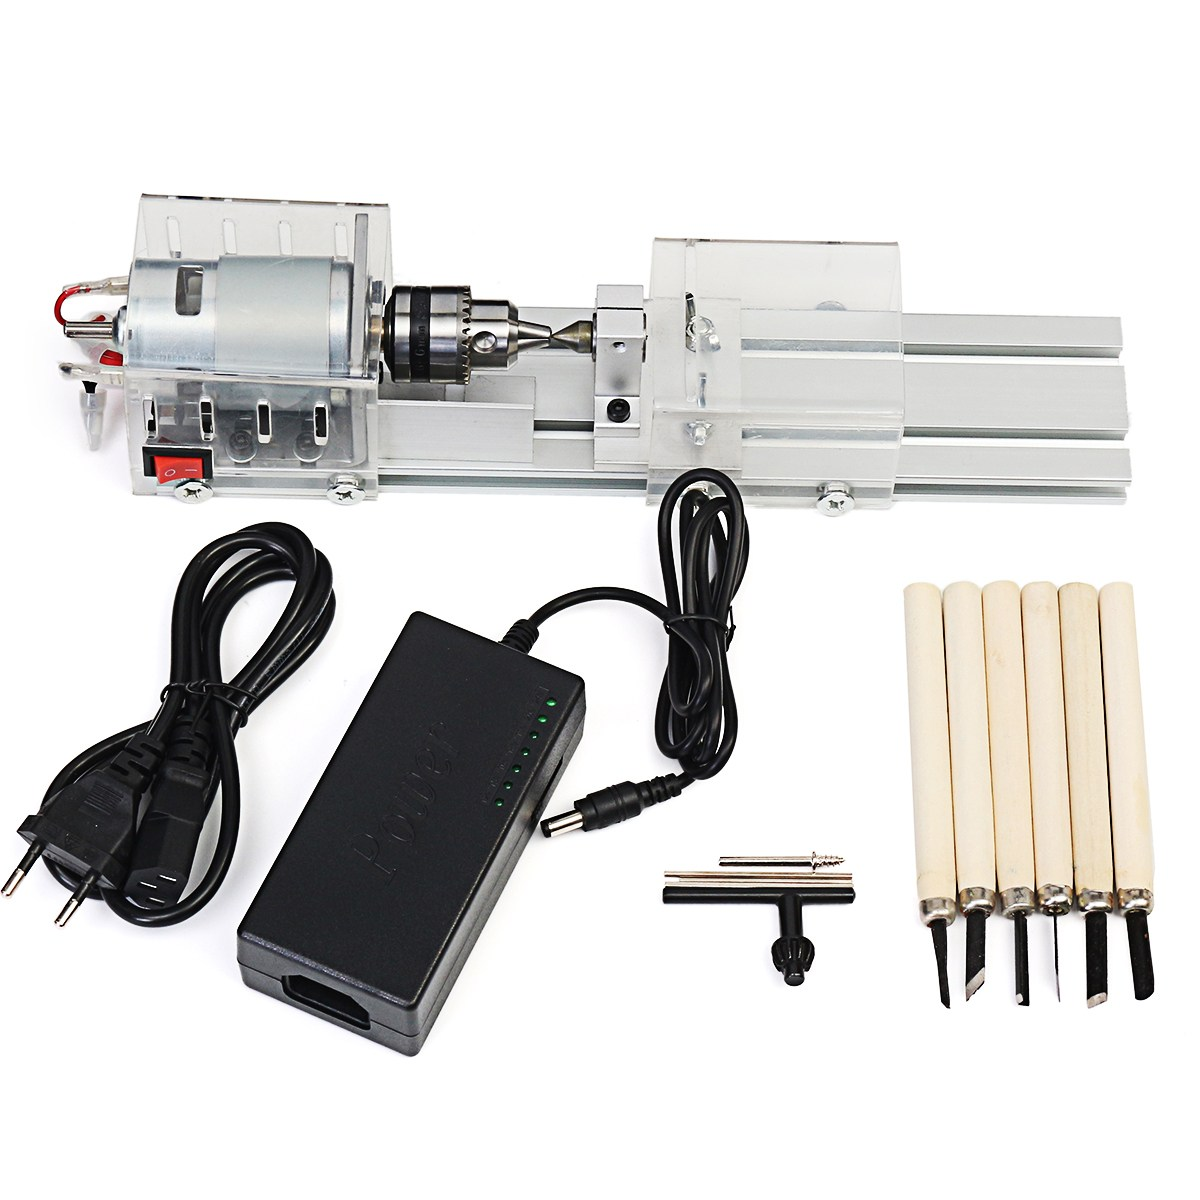 Mini Lathe Beads Machine Woodworking Drill Rotary Tool Standard Set DIY Lathe Polishing Cutting with Power